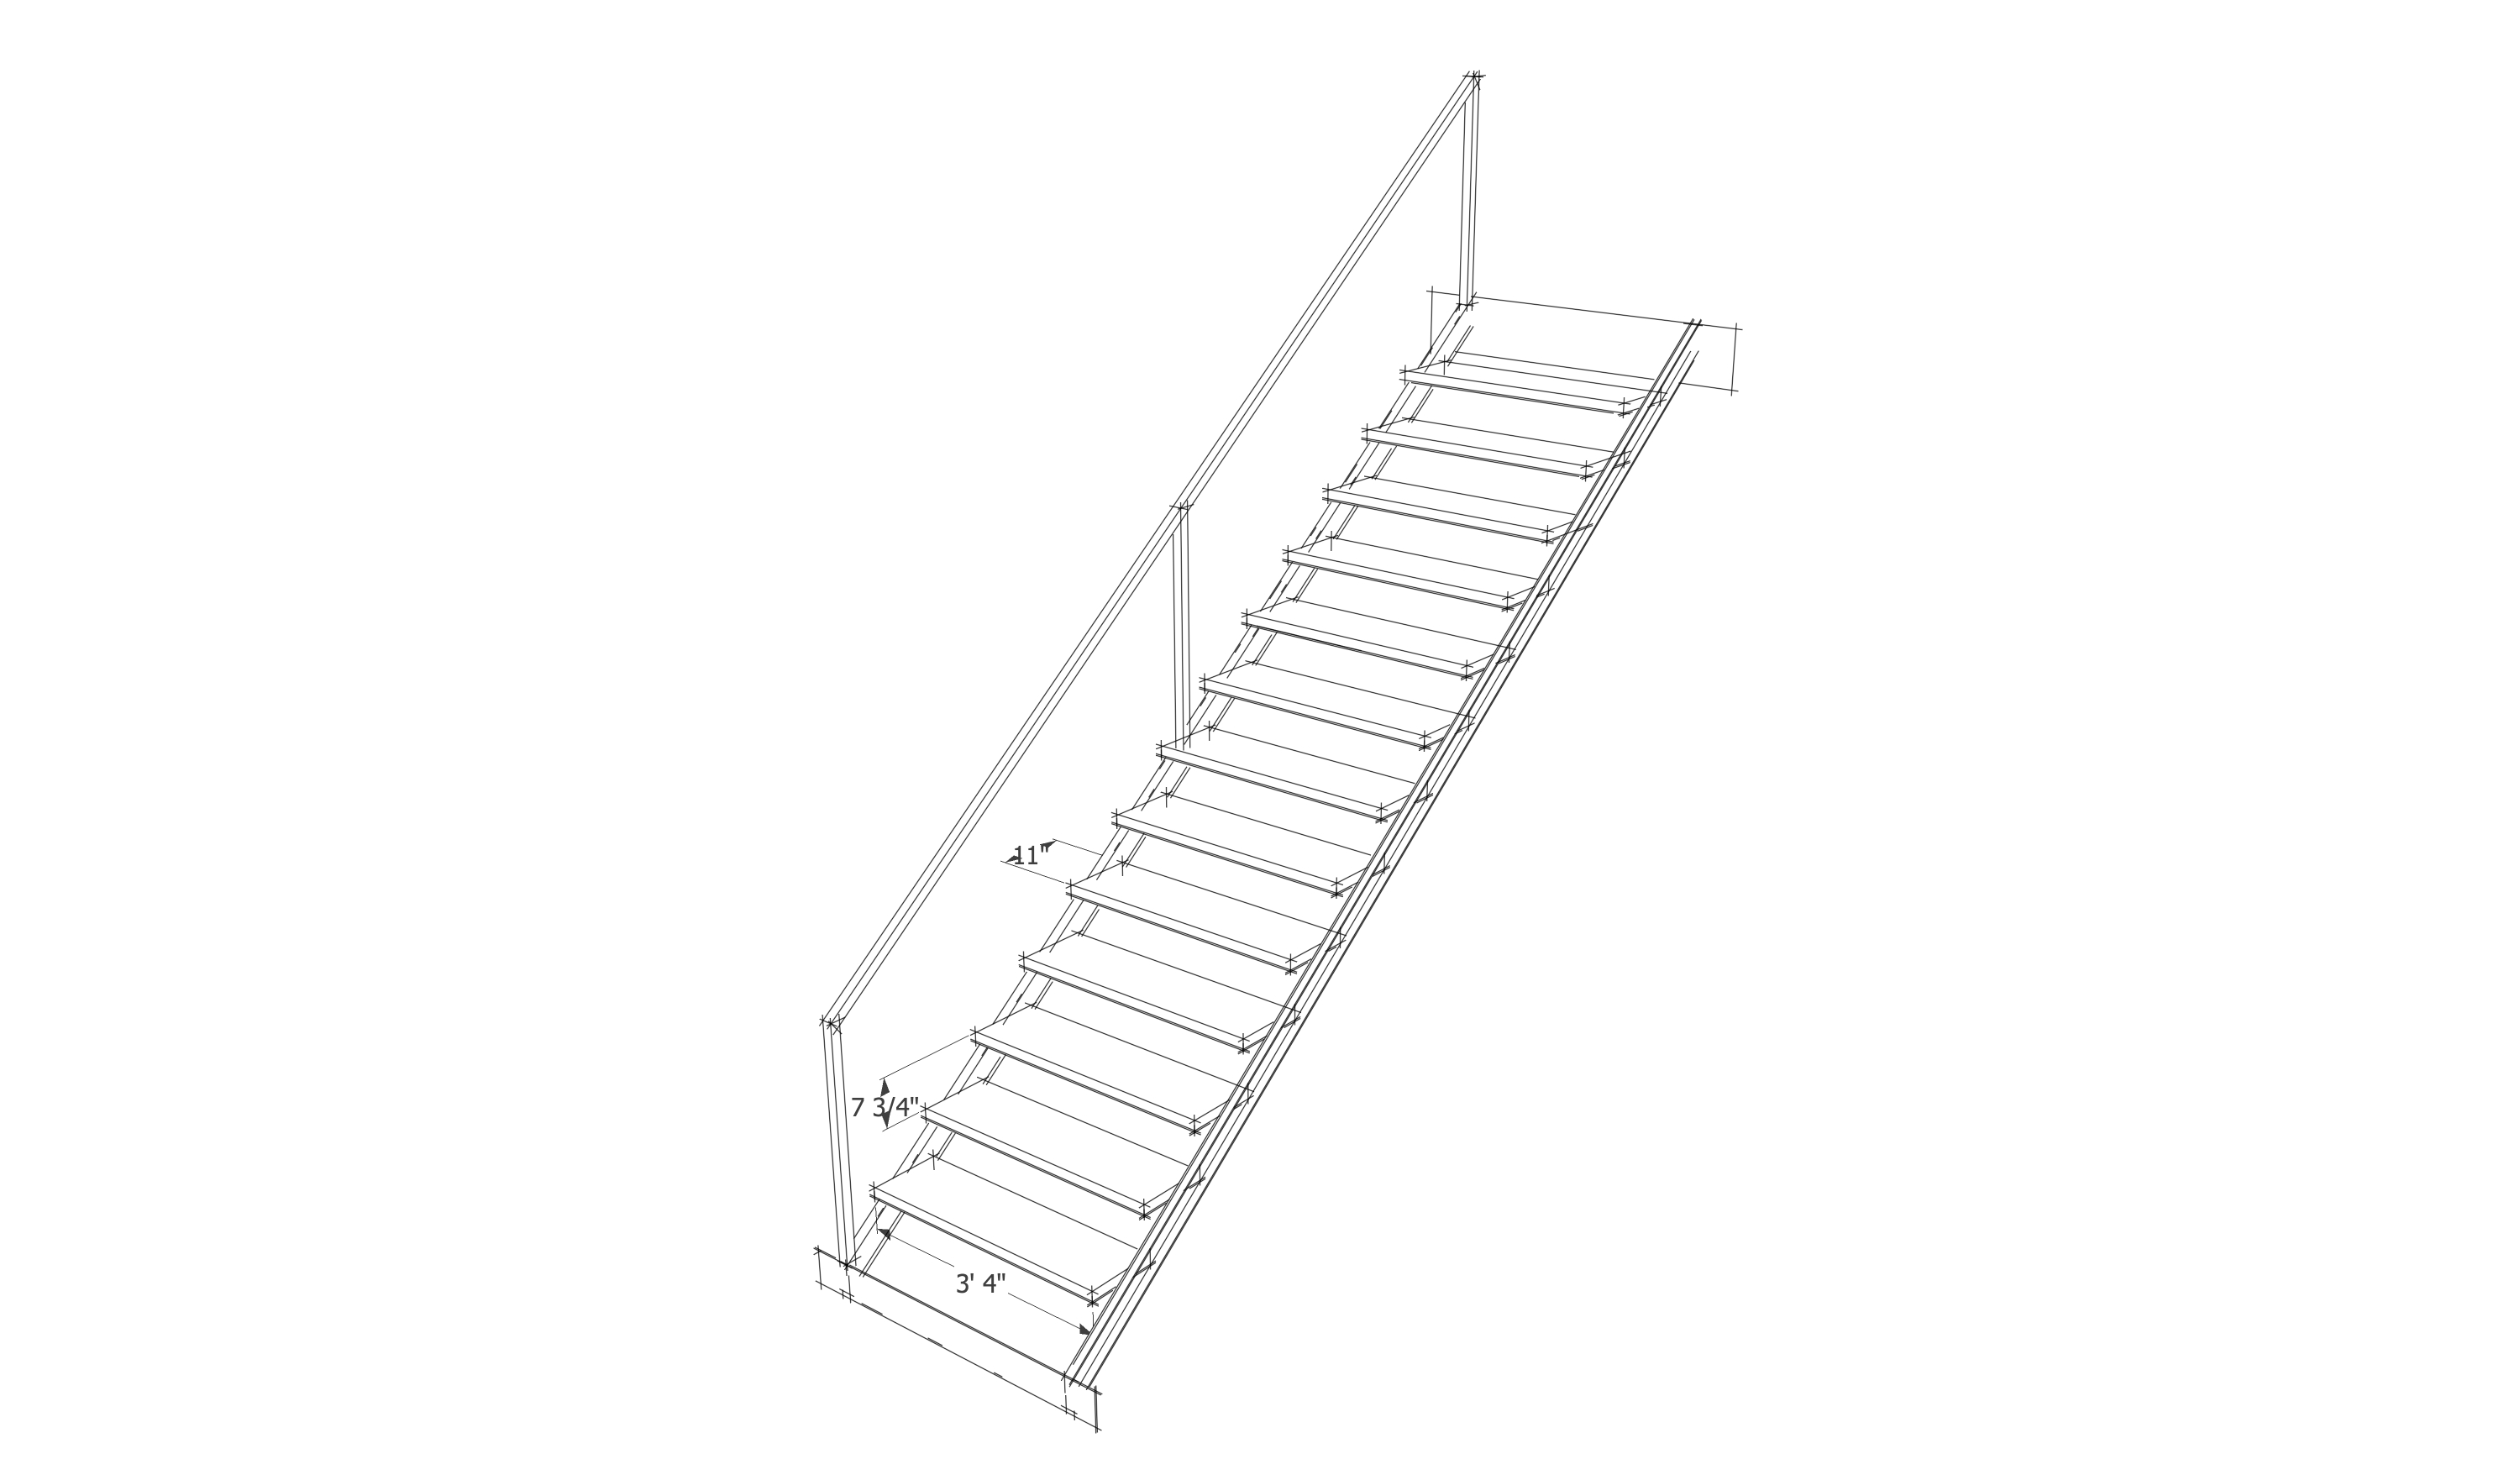 How To Build Stairs A Diy Guide Extreme How To Urban Autos Post